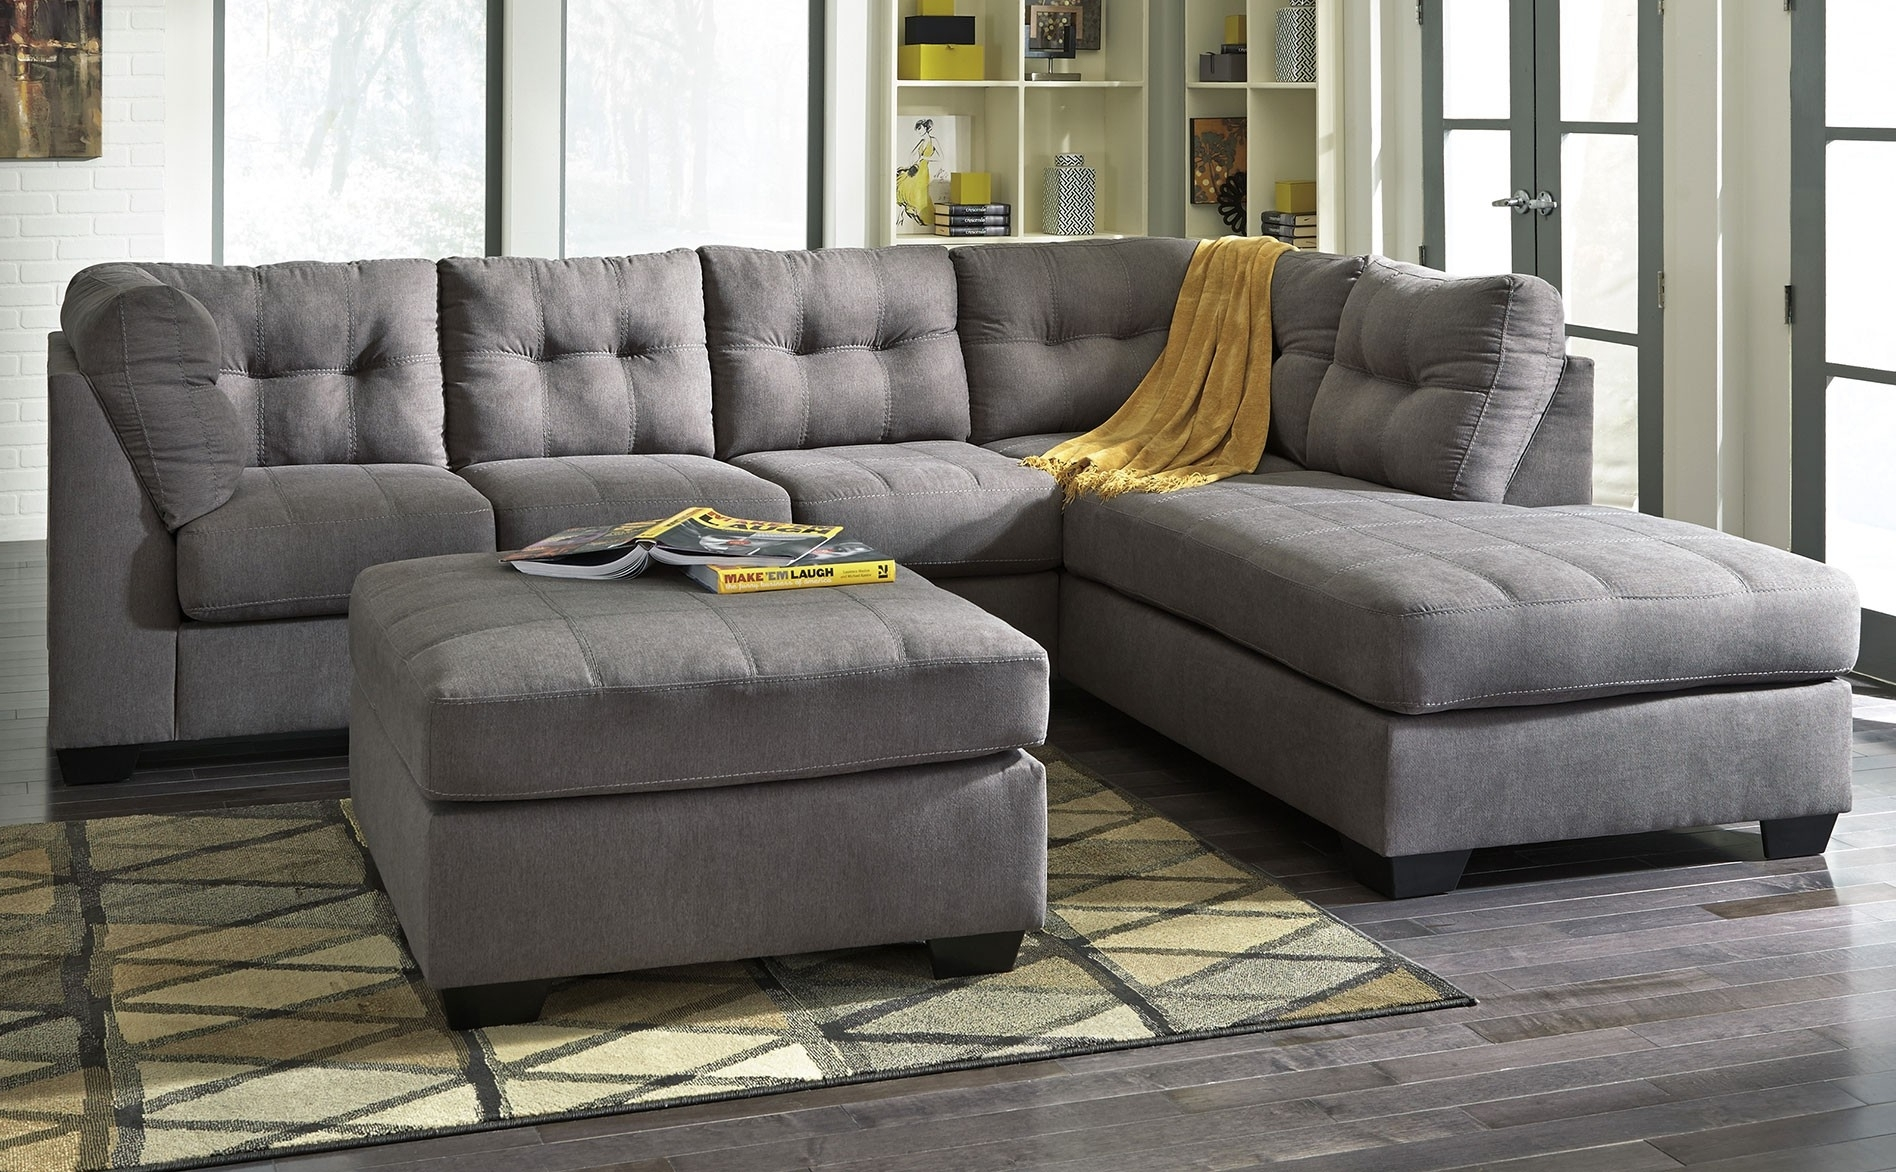 2018 Sectional Couch With Recliner Ikea Couch Bed Large Leather Inside Sofa Sectionals With Chaise (View 1 of 15)